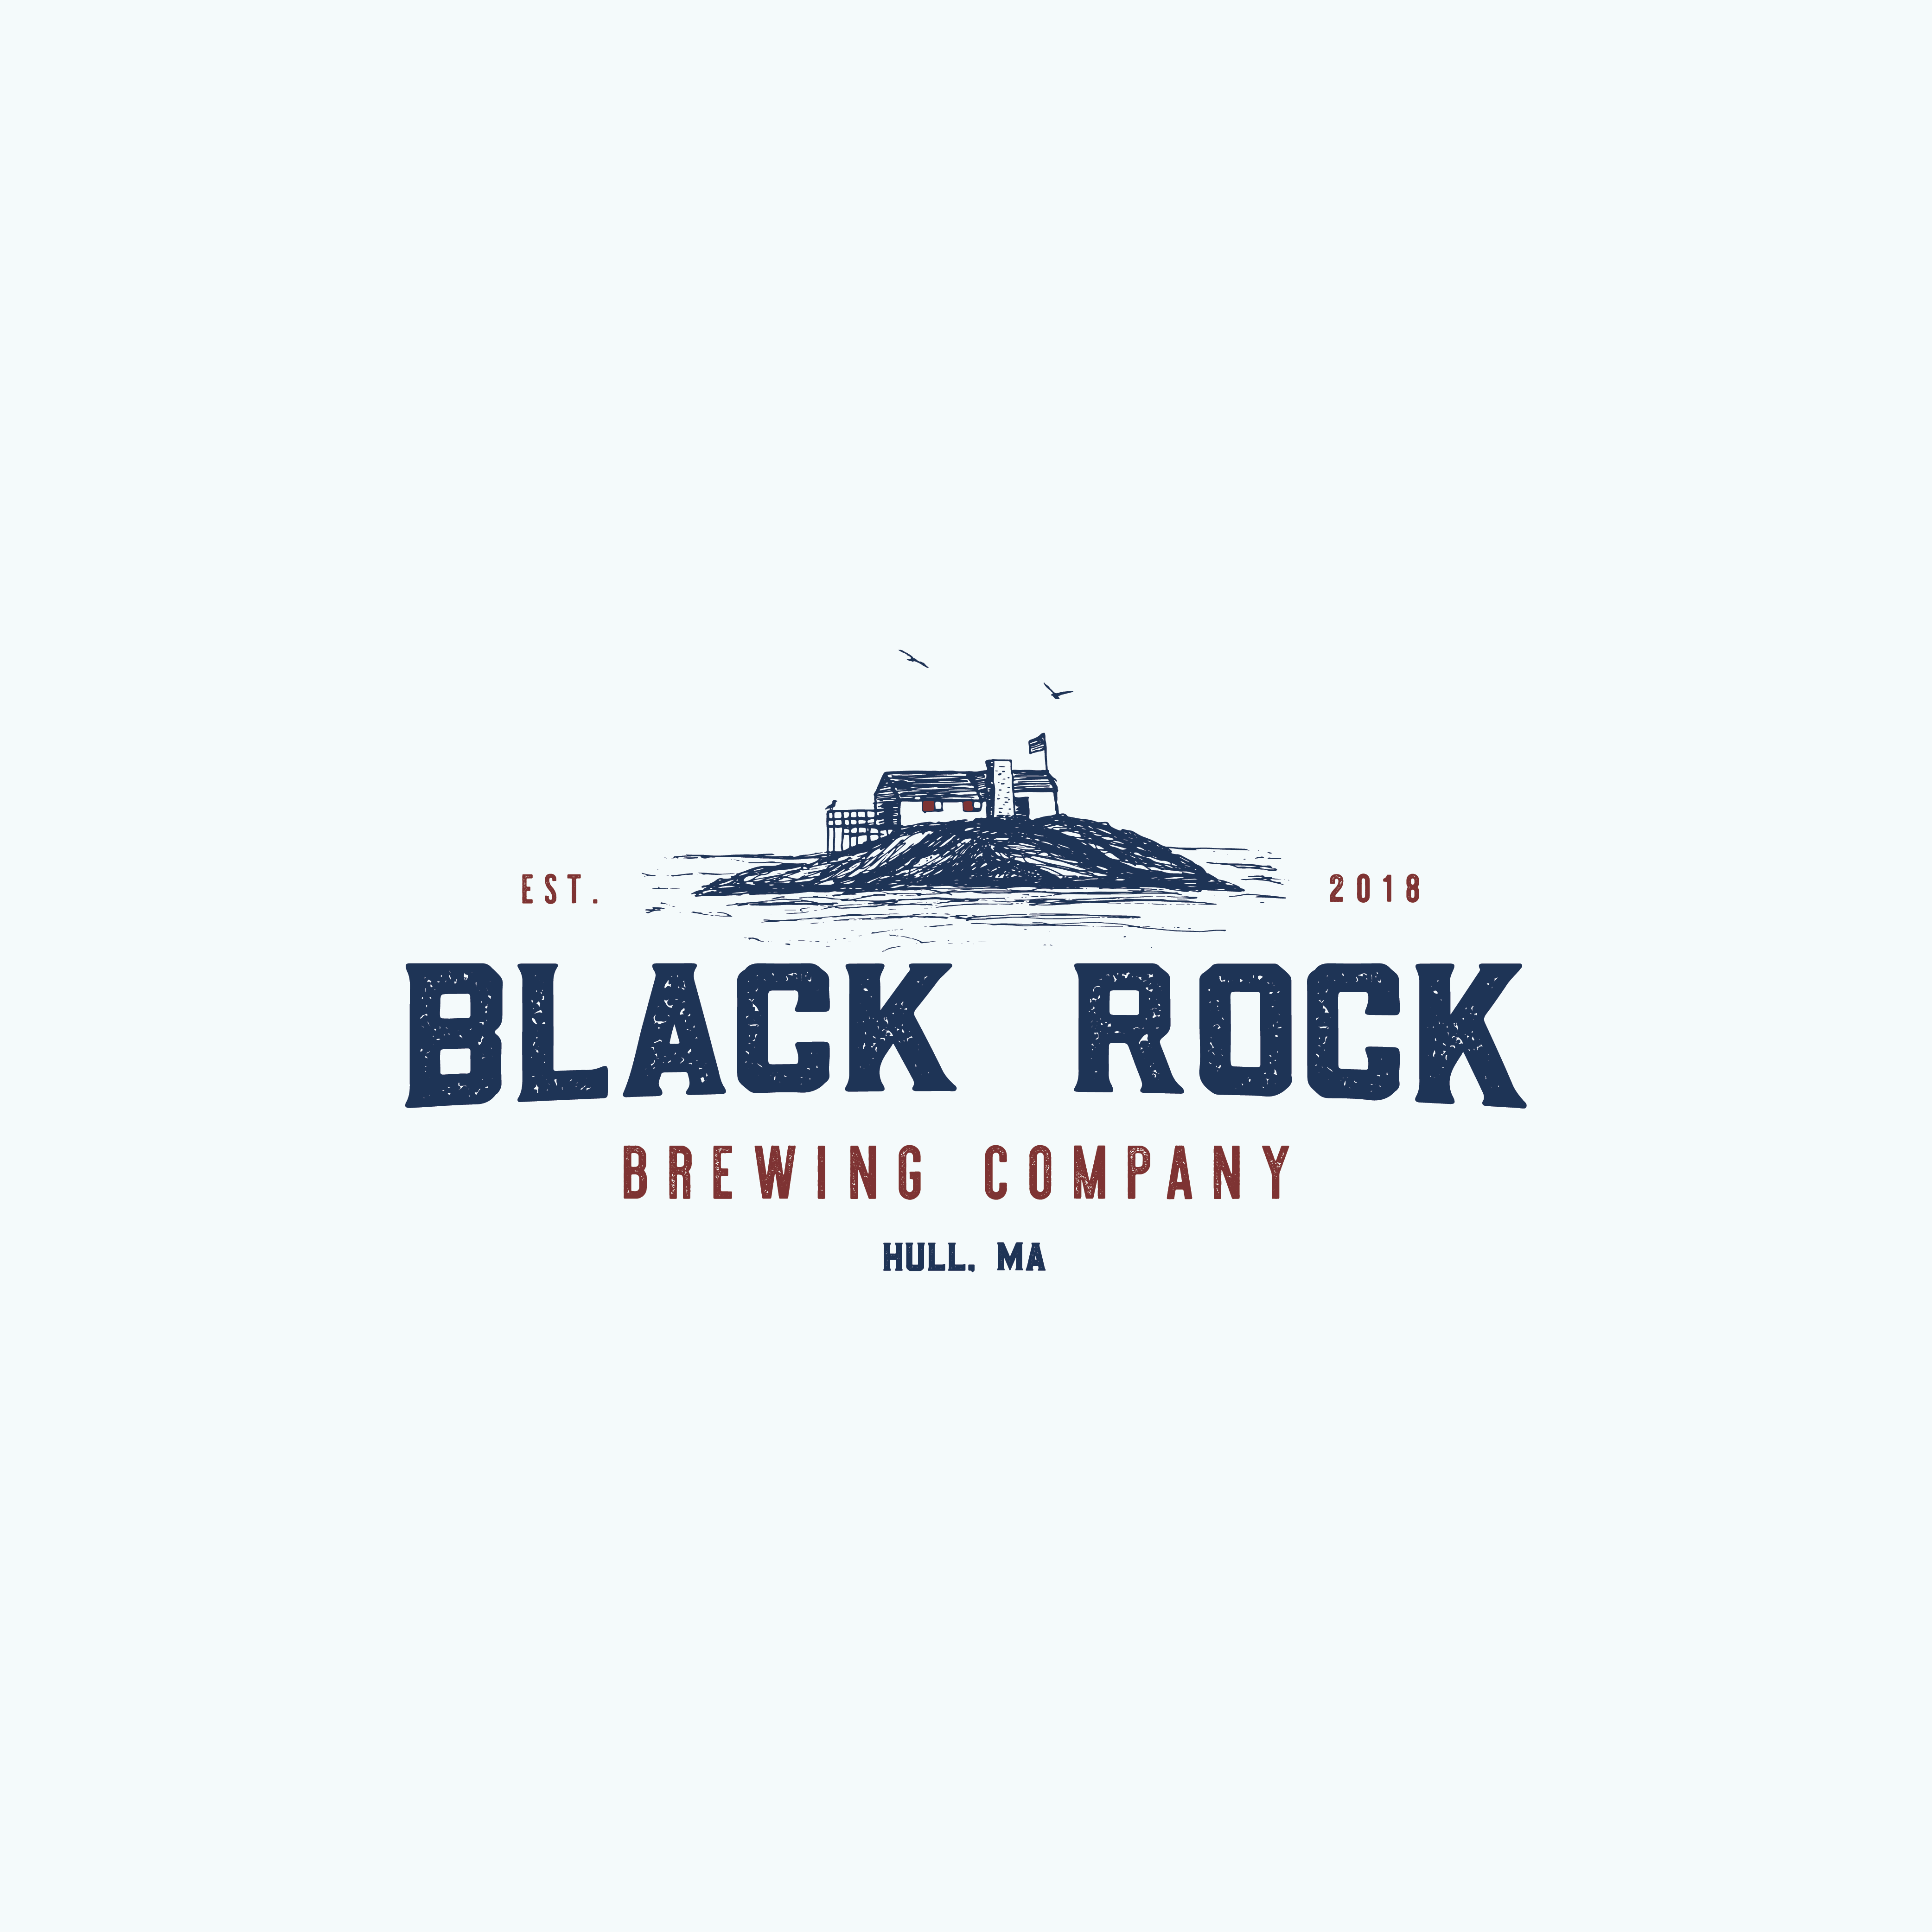 Black Rock Brewing Company needs a top notch logo to represent it's awesomeness